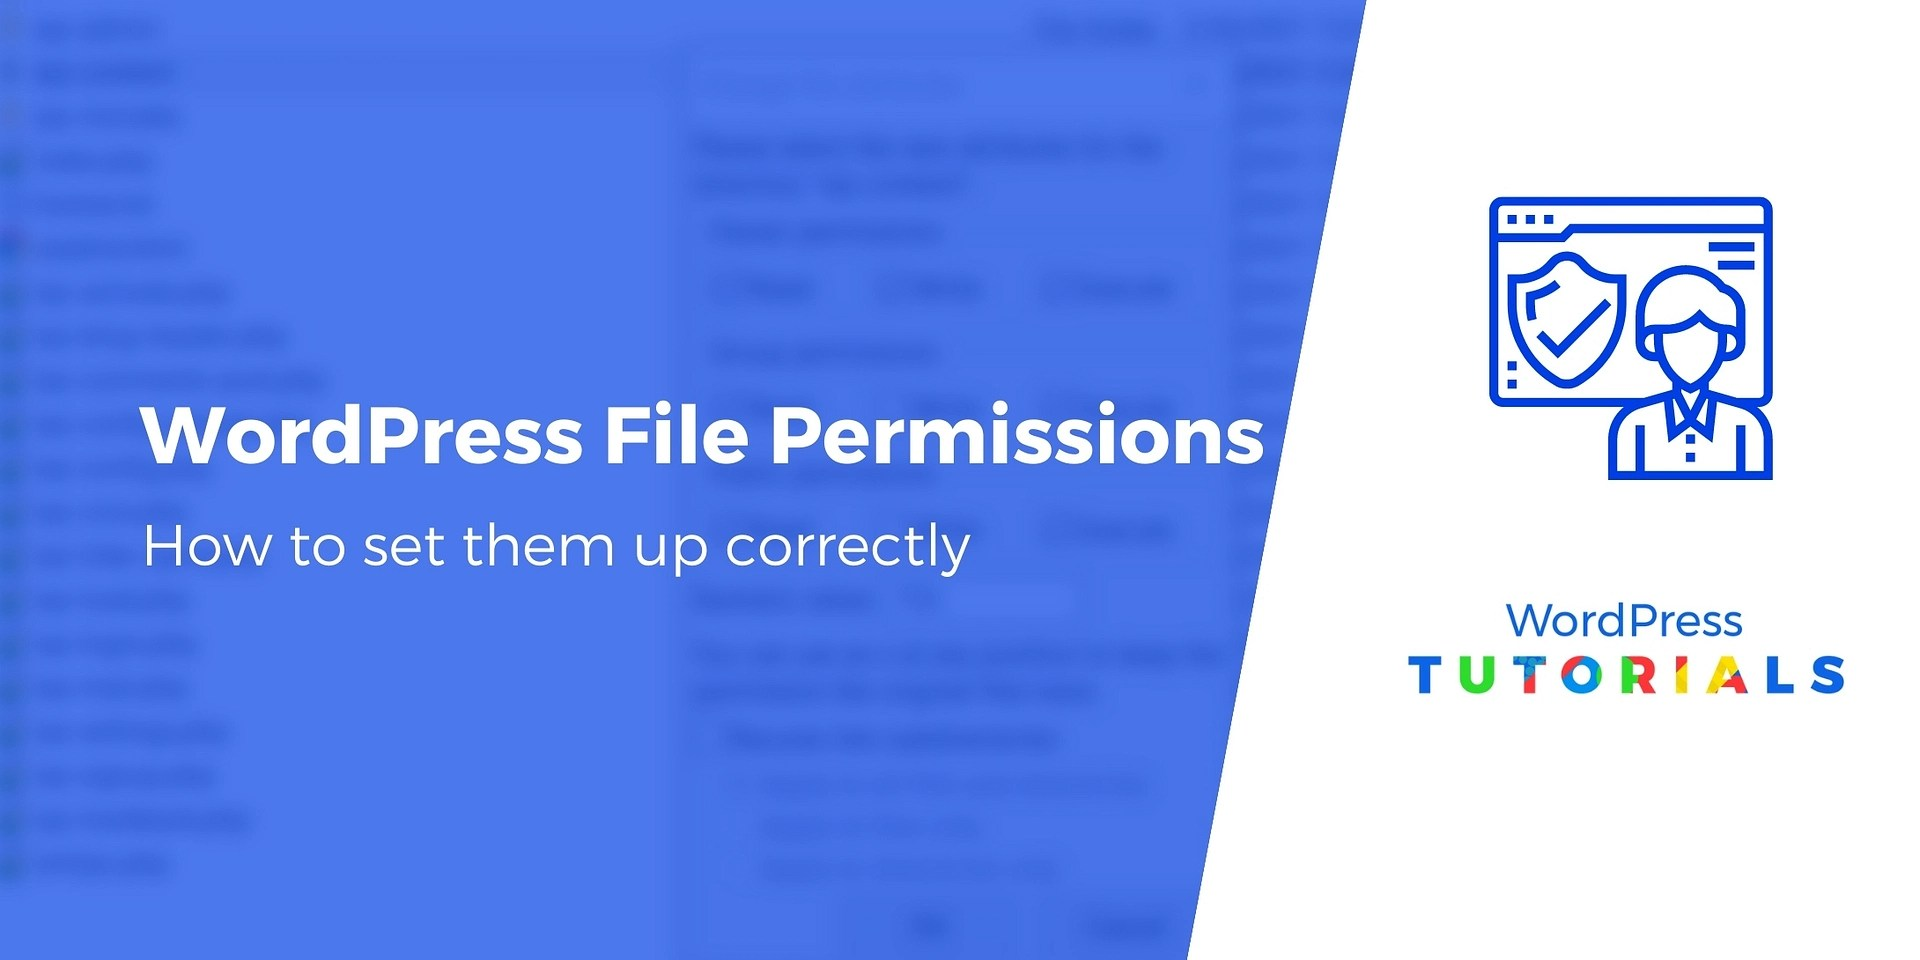 WordPress File Permissions: How to Set Them Up Properly in 2021